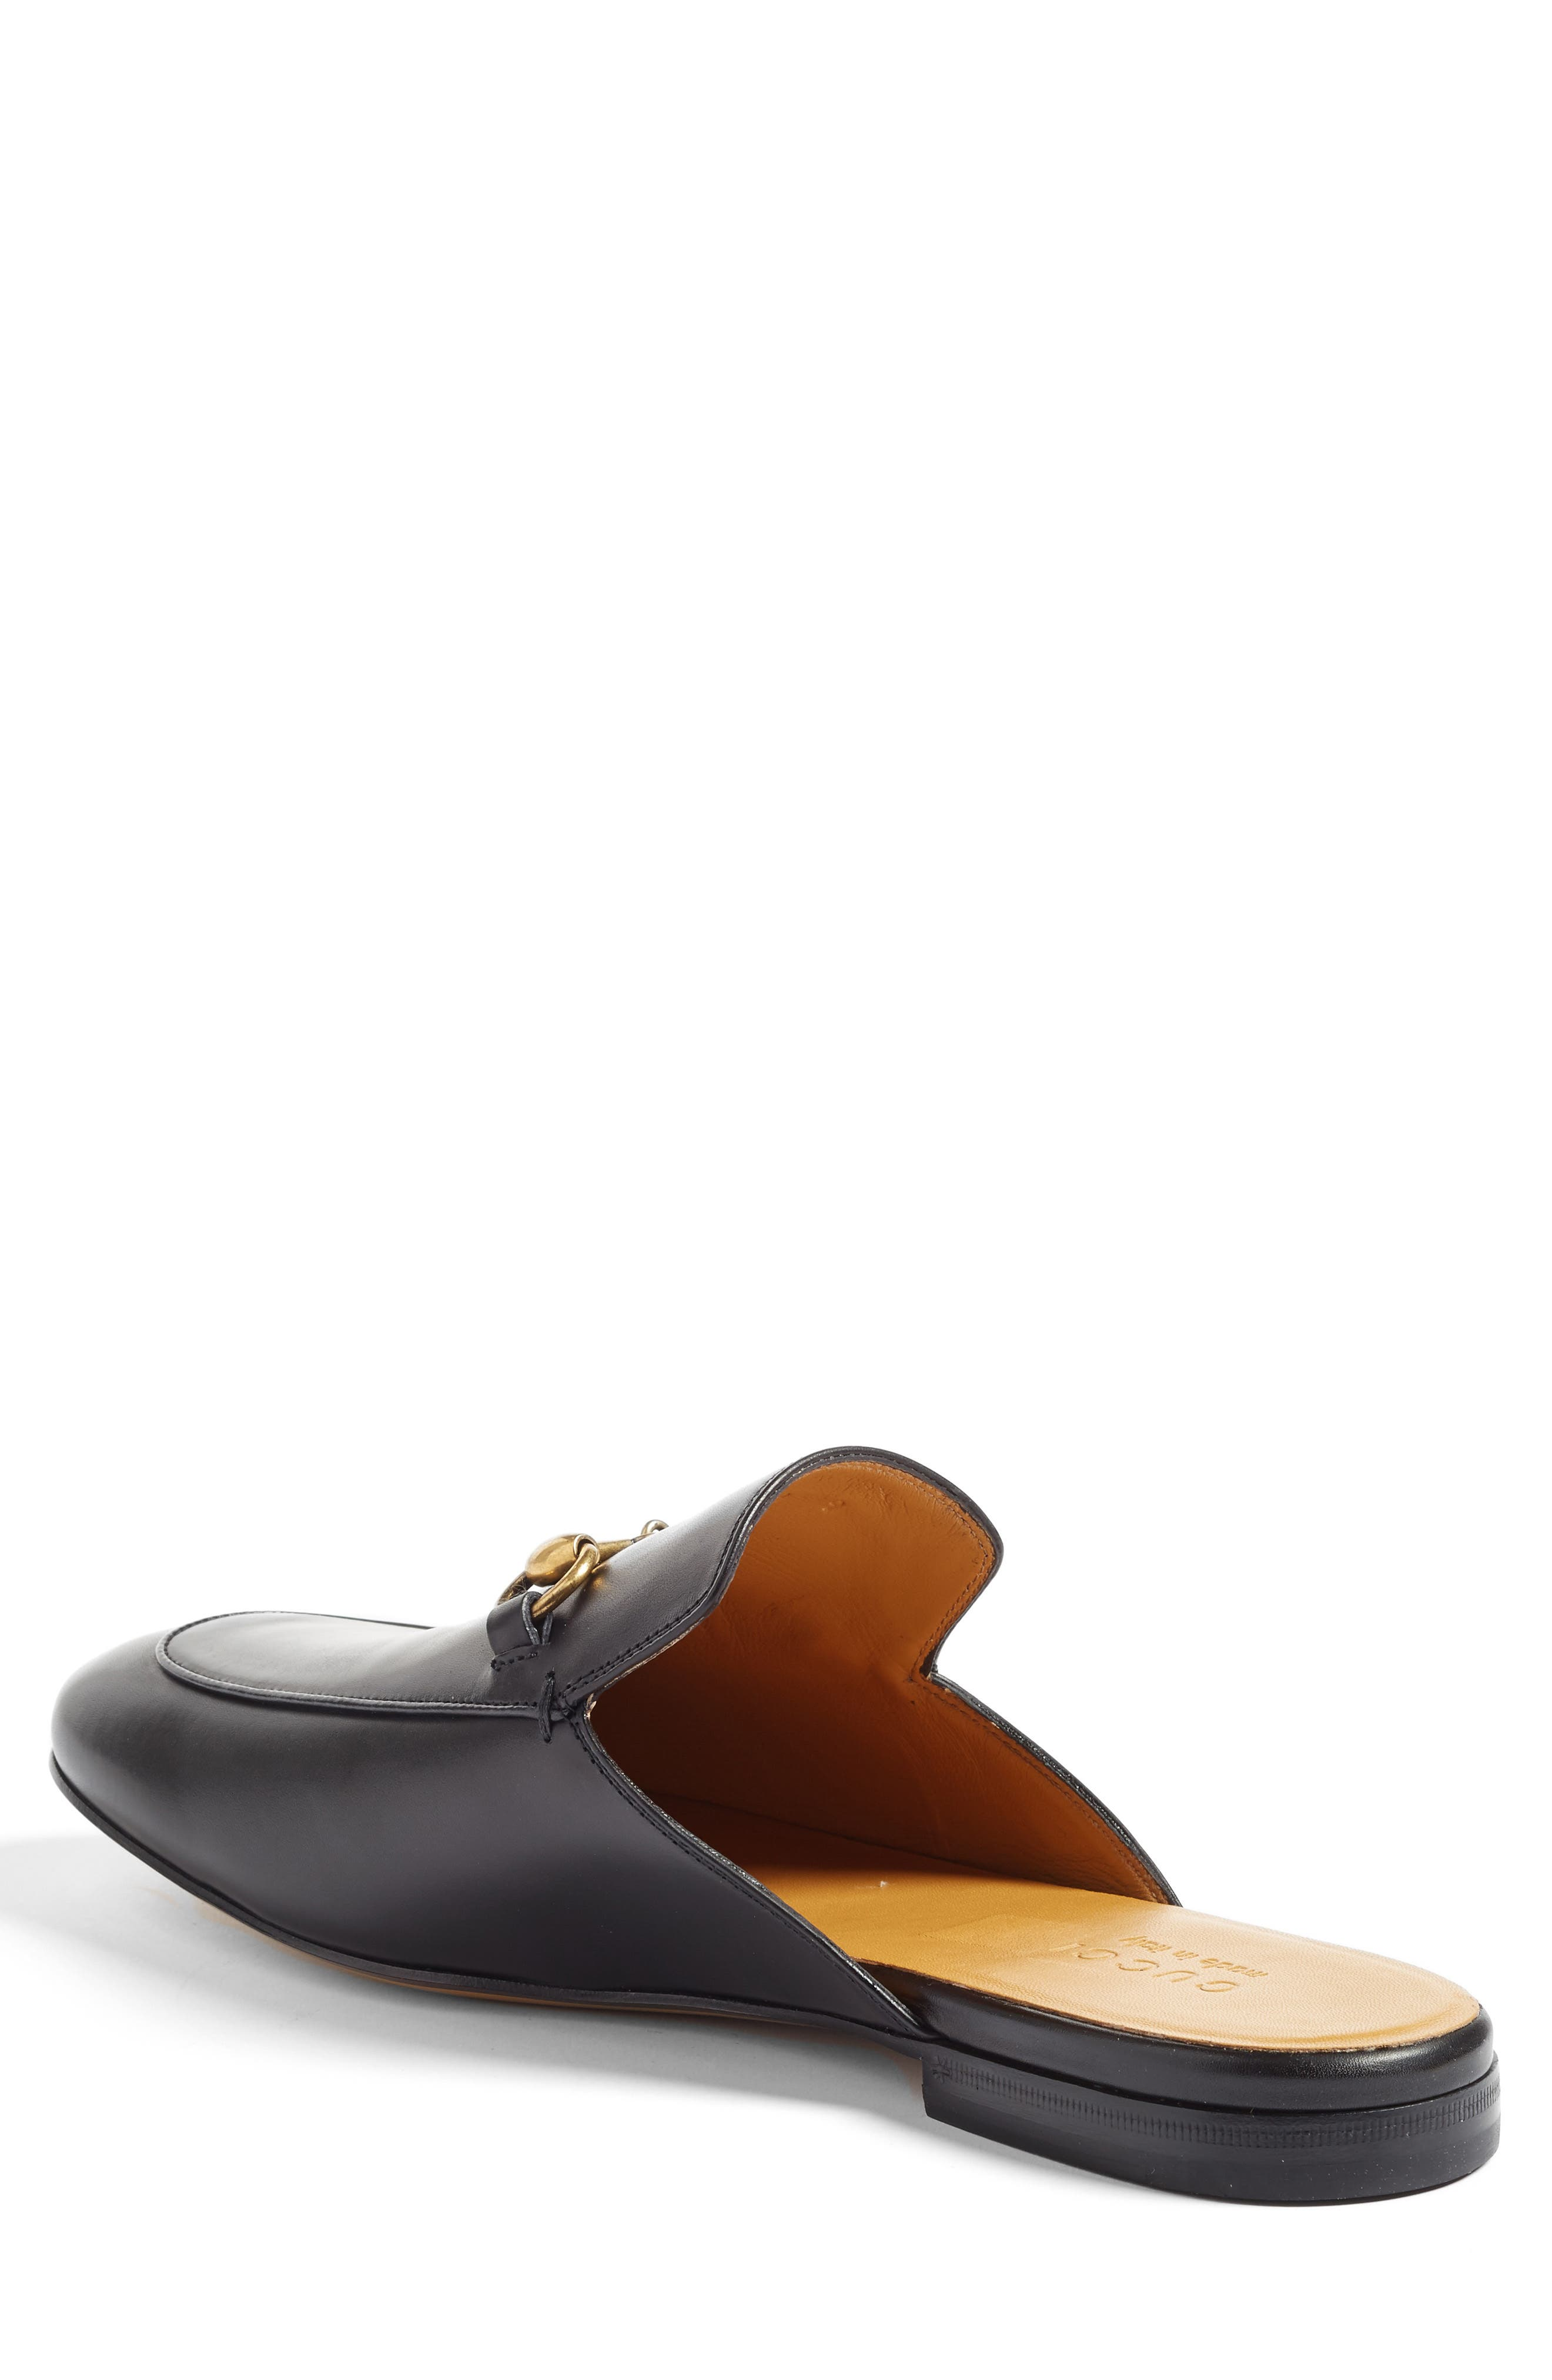 GUCCI, Straw Kings Slipper, Alternate thumbnail 2, color, NERO LEATHER